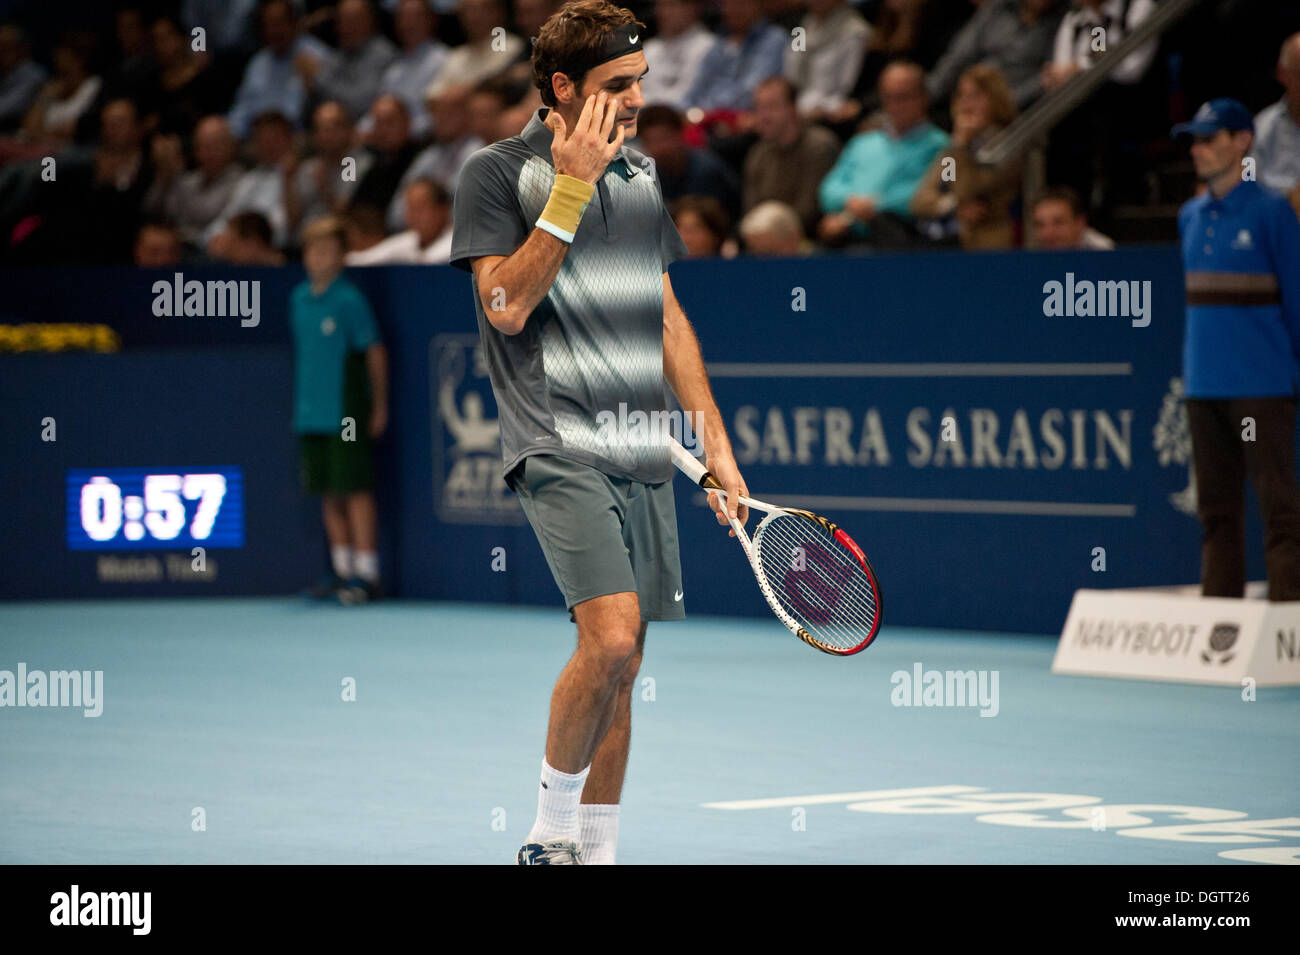 Basel, Switzerland. 25th Oct, 2013. Roger Federer (SUI) during a match of the quarter finals of the Swiss Indoors at St. Jakobshalle on Friday. Photo: Miroslav Dakov/ Alamy Live News - Stock Image